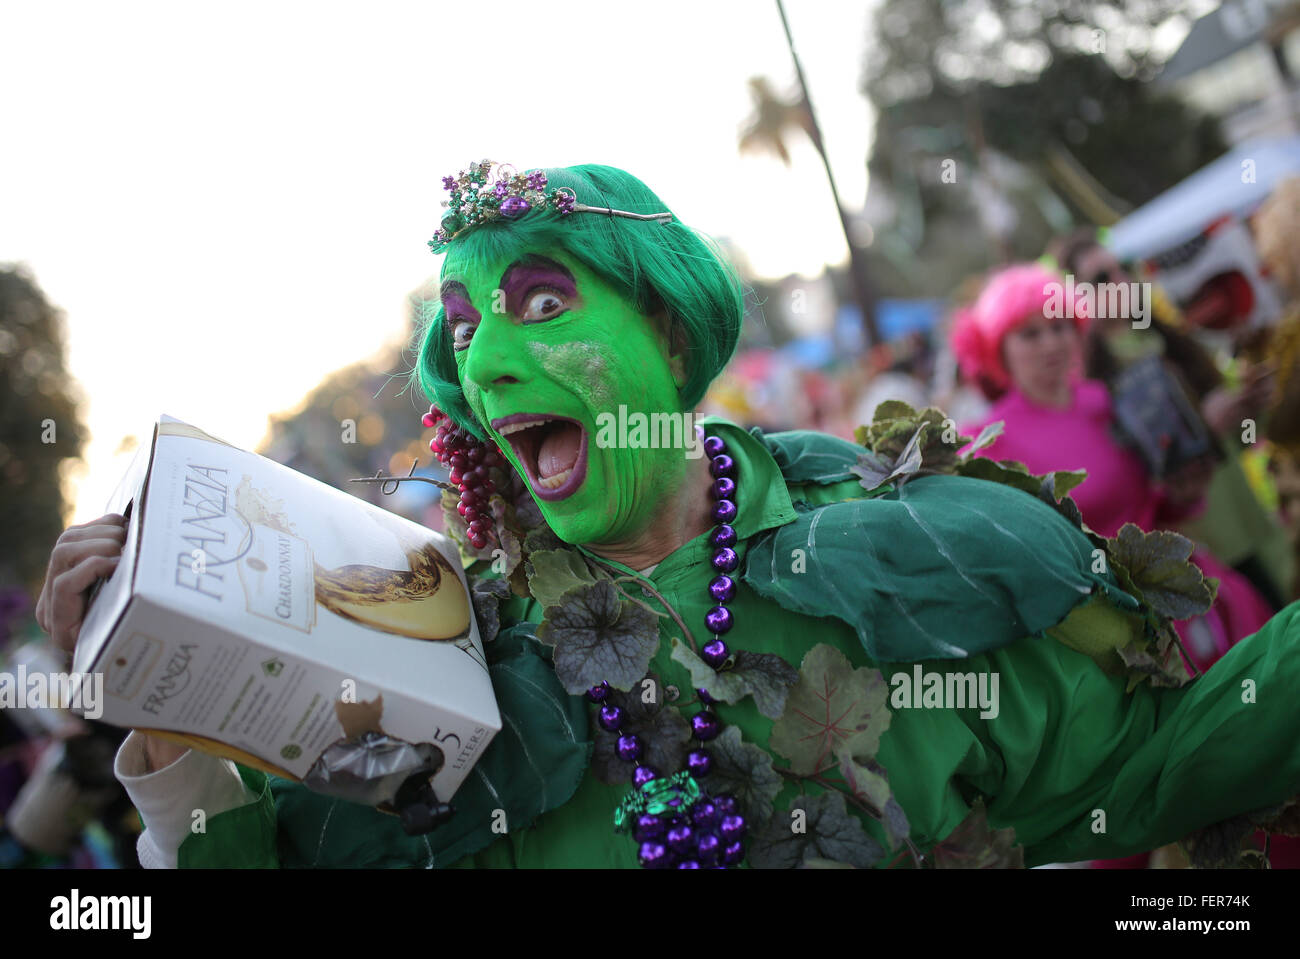 New Orleans, LOUISIANA, USA. 7th Feb, 2016. A costumed marcher before the Krewe of Bacchus Mardi Gras Parade on Stock Photo